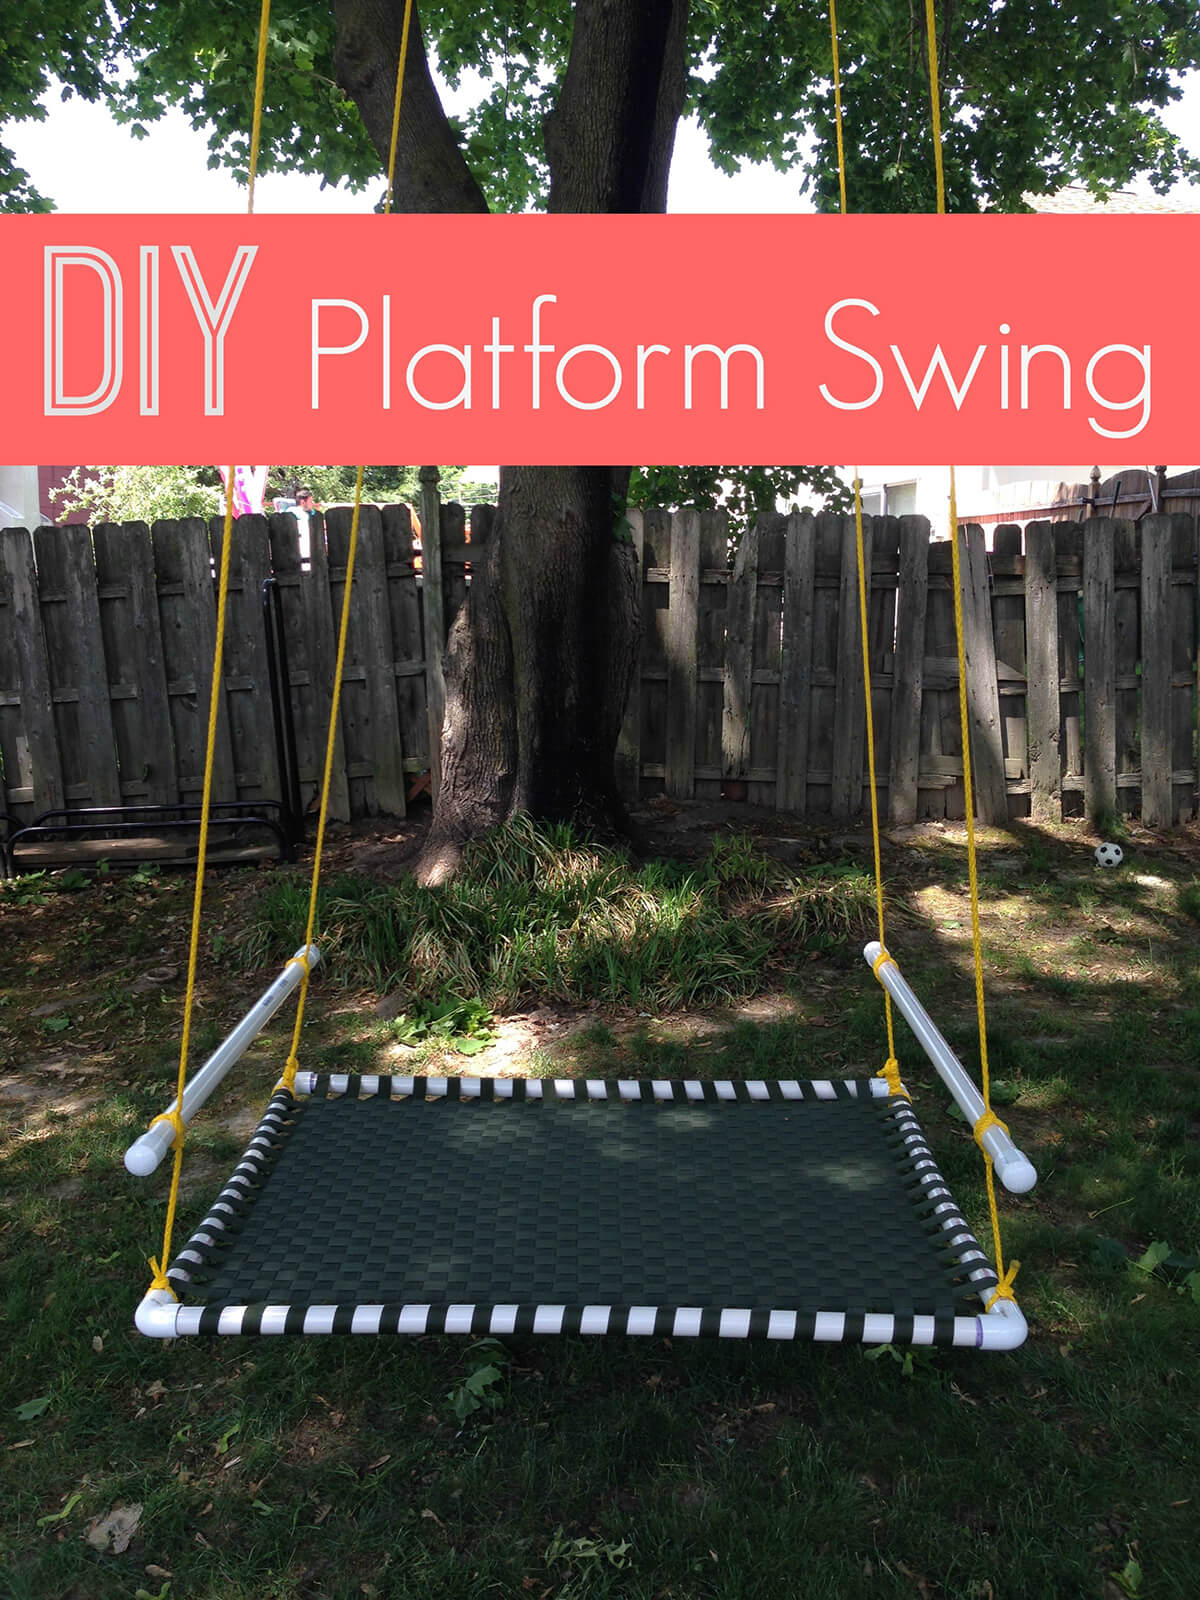 34 Best Diy Backyard Ideas And Designs For Kids In 2019